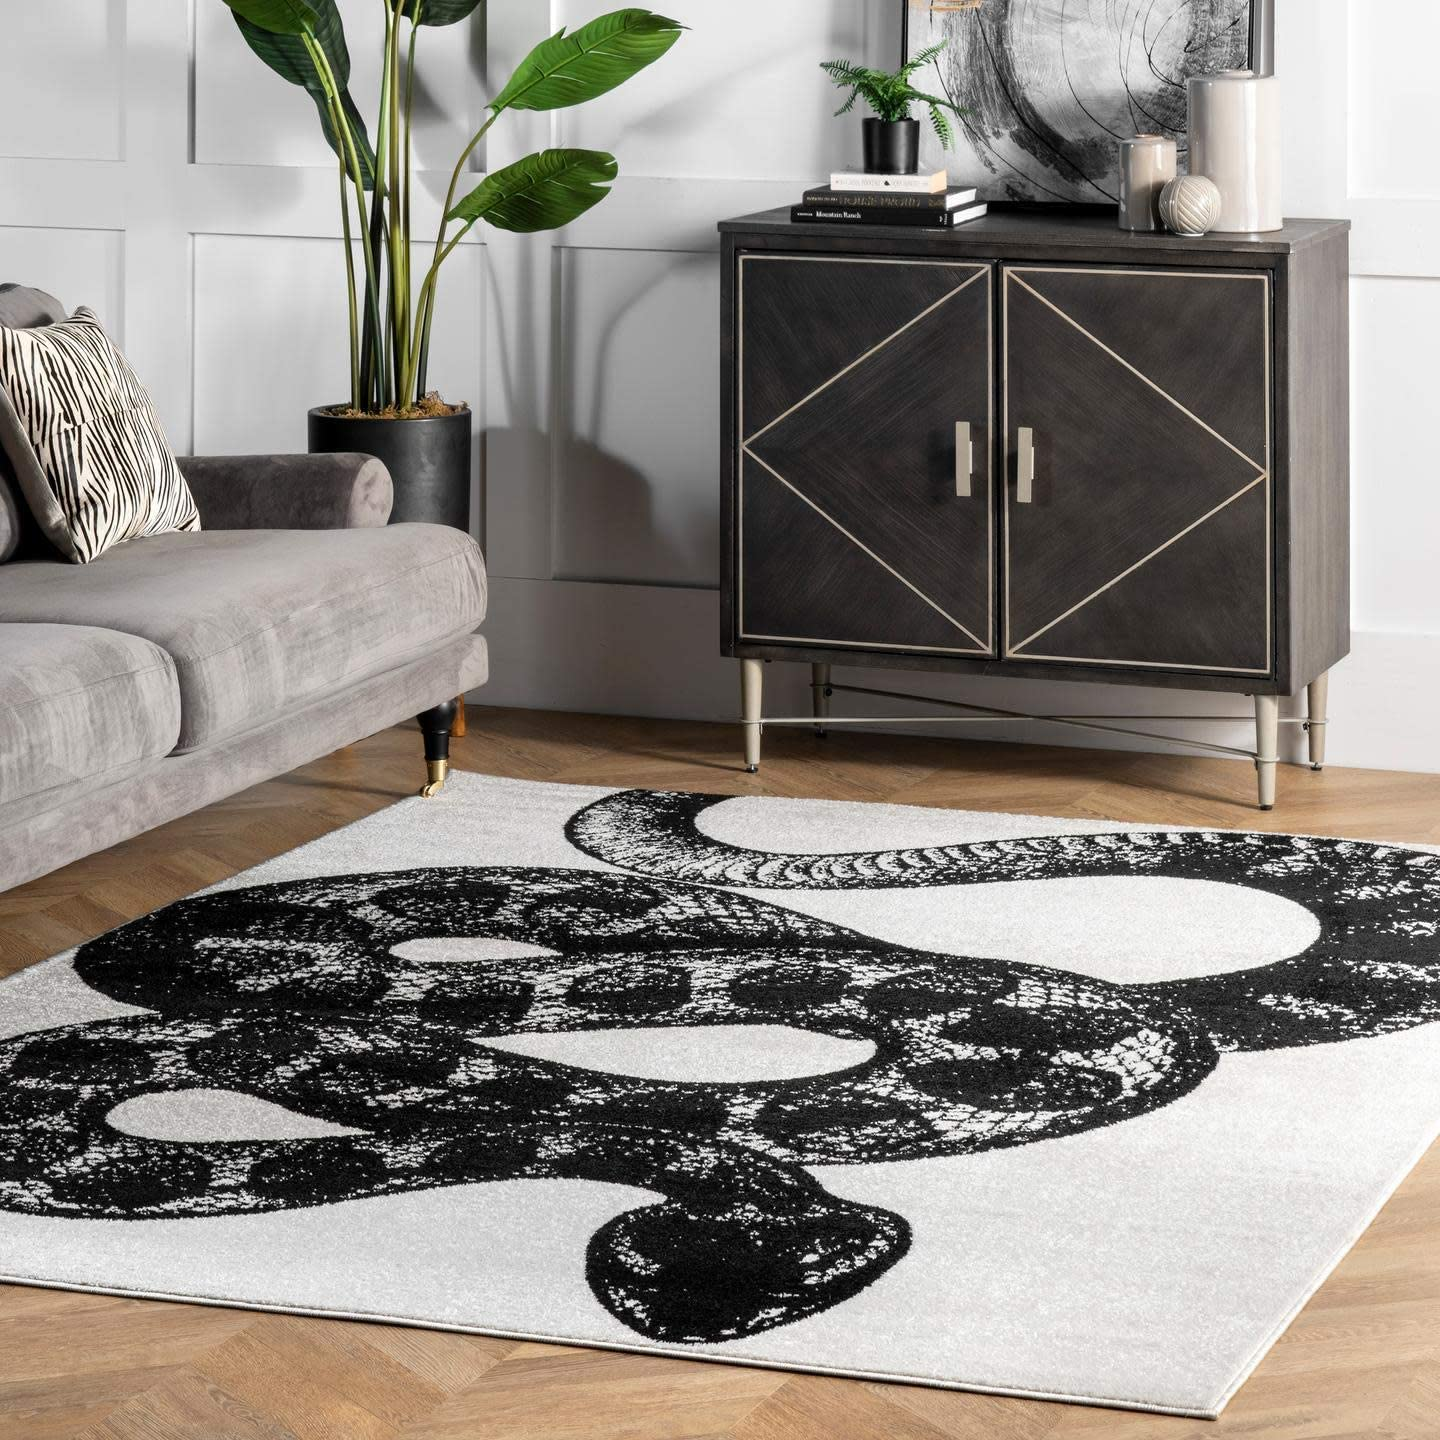 nuLOOM Thomas Paul Serpent Area Rug, 8 10 x 12 , Black White